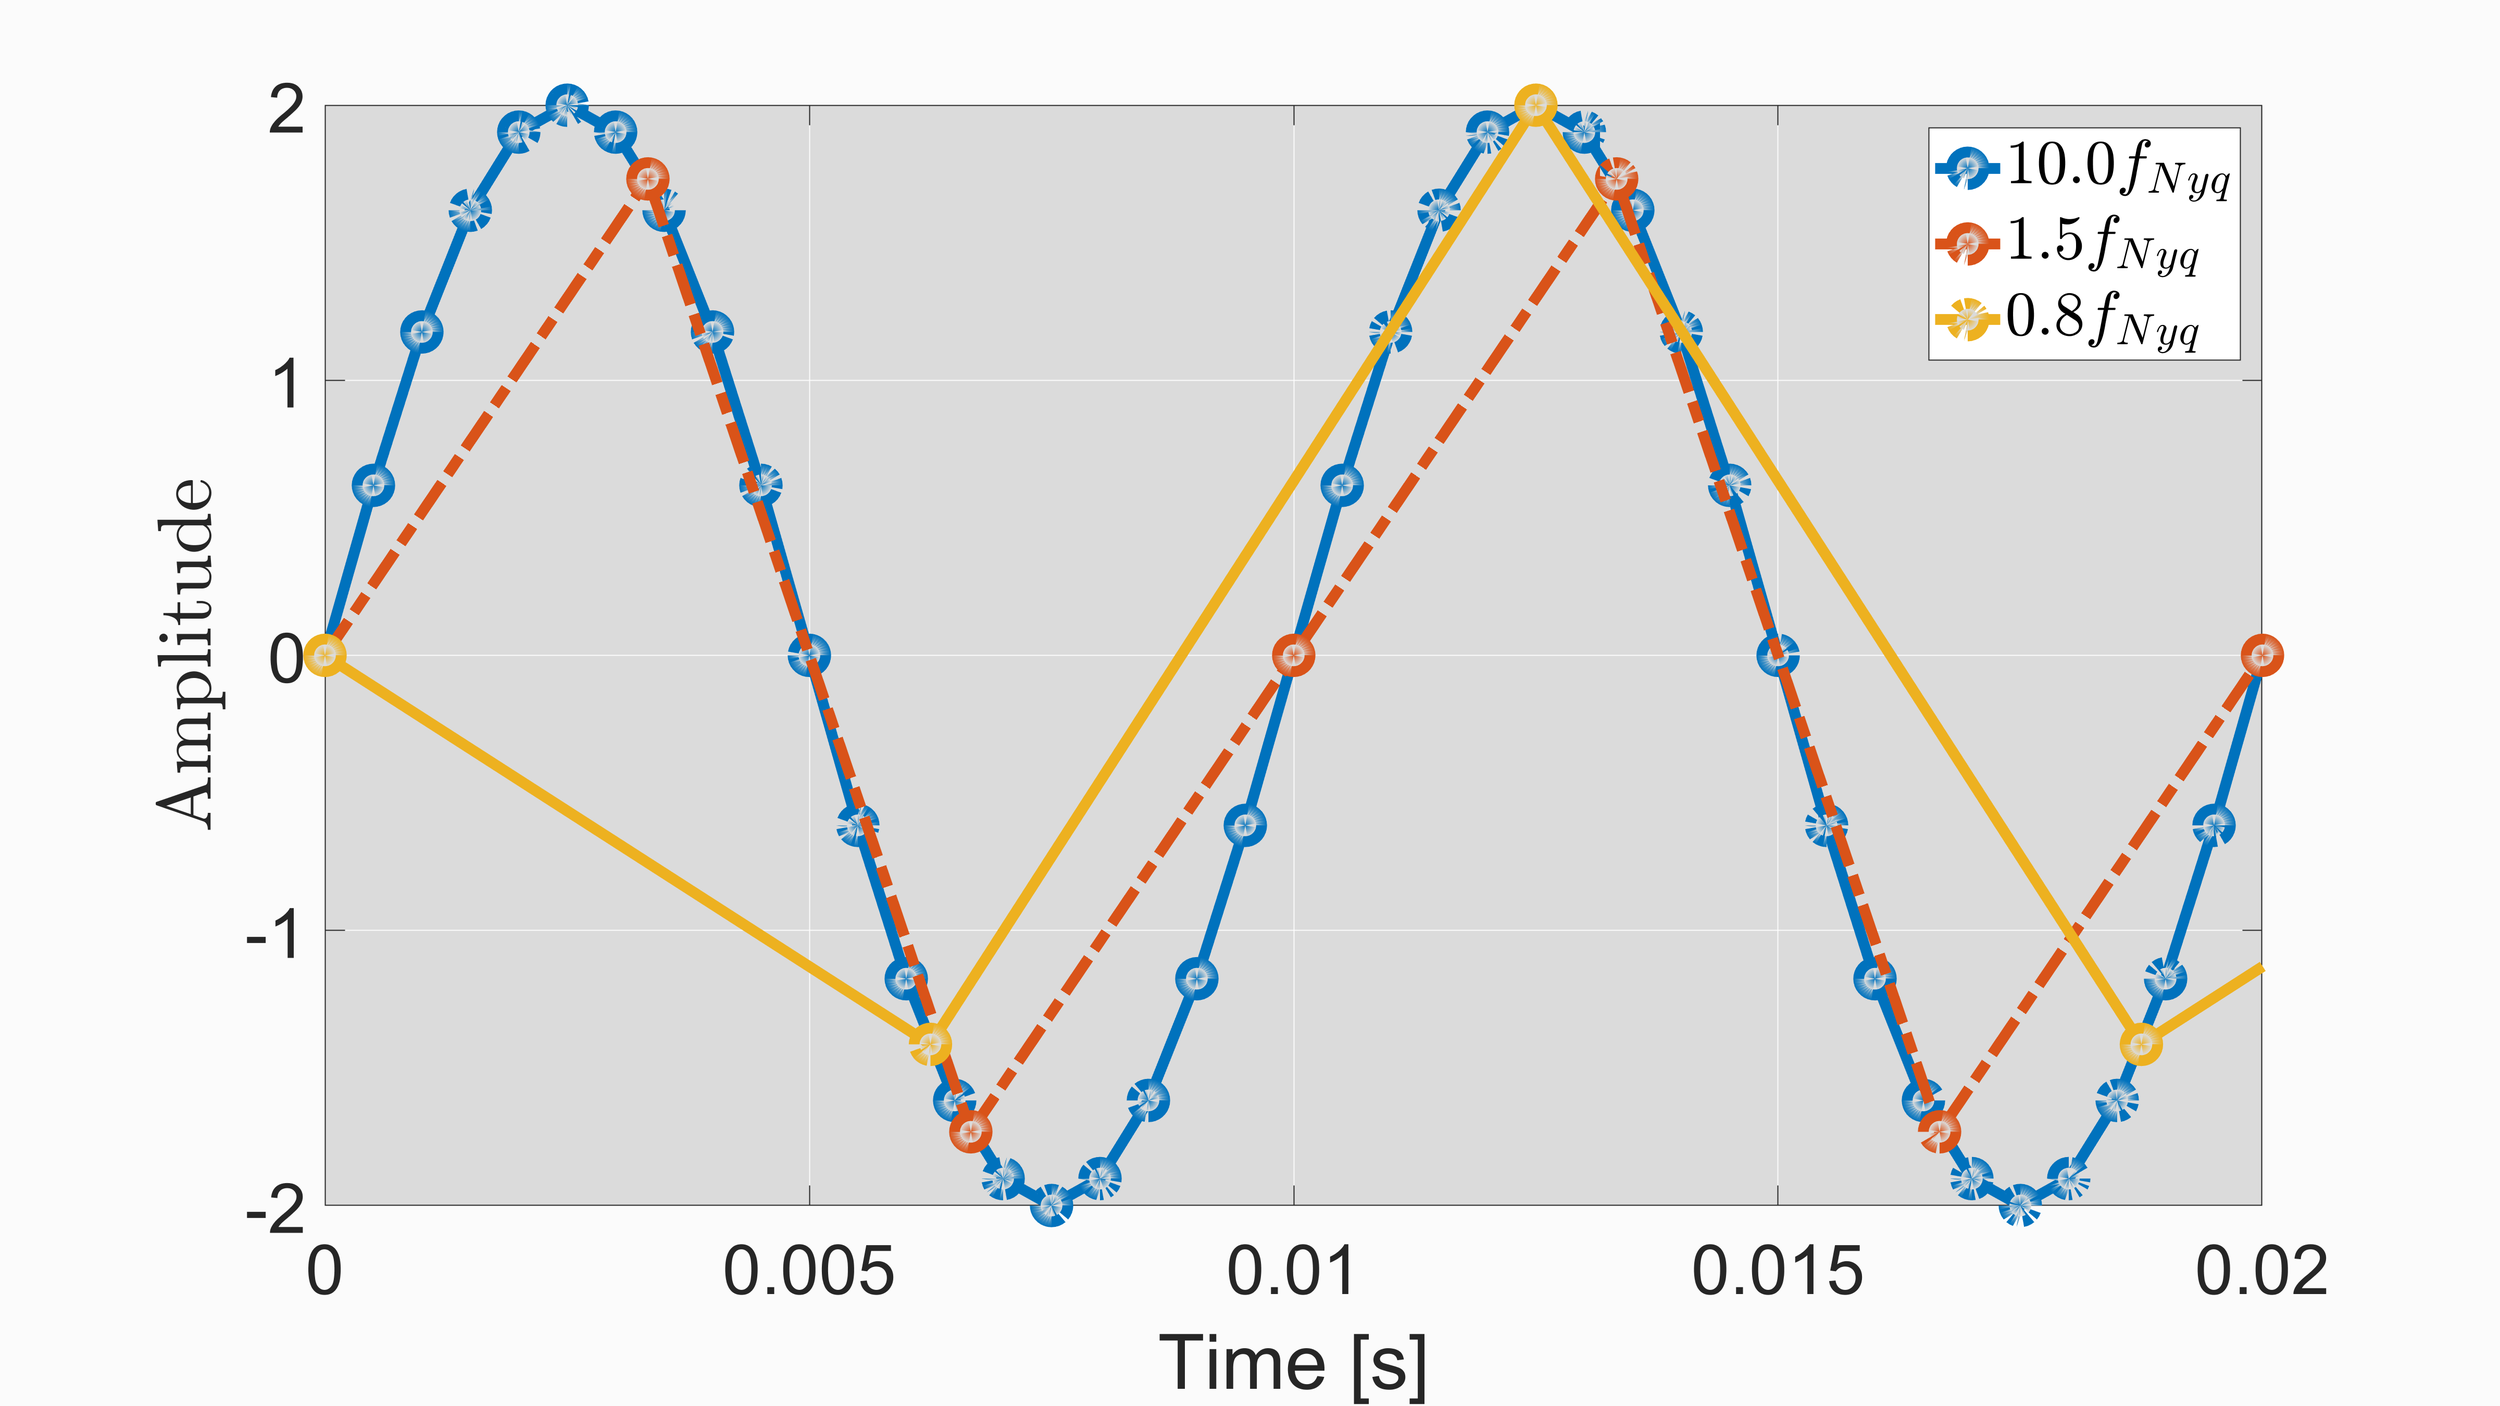 Figure 2:  Plot showing the affects of aliasing around the Nyquist frequency. As the sample rate dips below twice the natural frequency, we start to see the inability to replicate the true signal. In this case, a 100 Hz sine wave was inputted, and at 10 times the Nyquist frequency the signal is clearly replicated. At 1.2 times the Nyquist frequency the signal can still be reconstructed, however, once we dip below twice the natural frequency, or below the Nyquist frequency, we can no longer replicate the original 100 Hz signal.